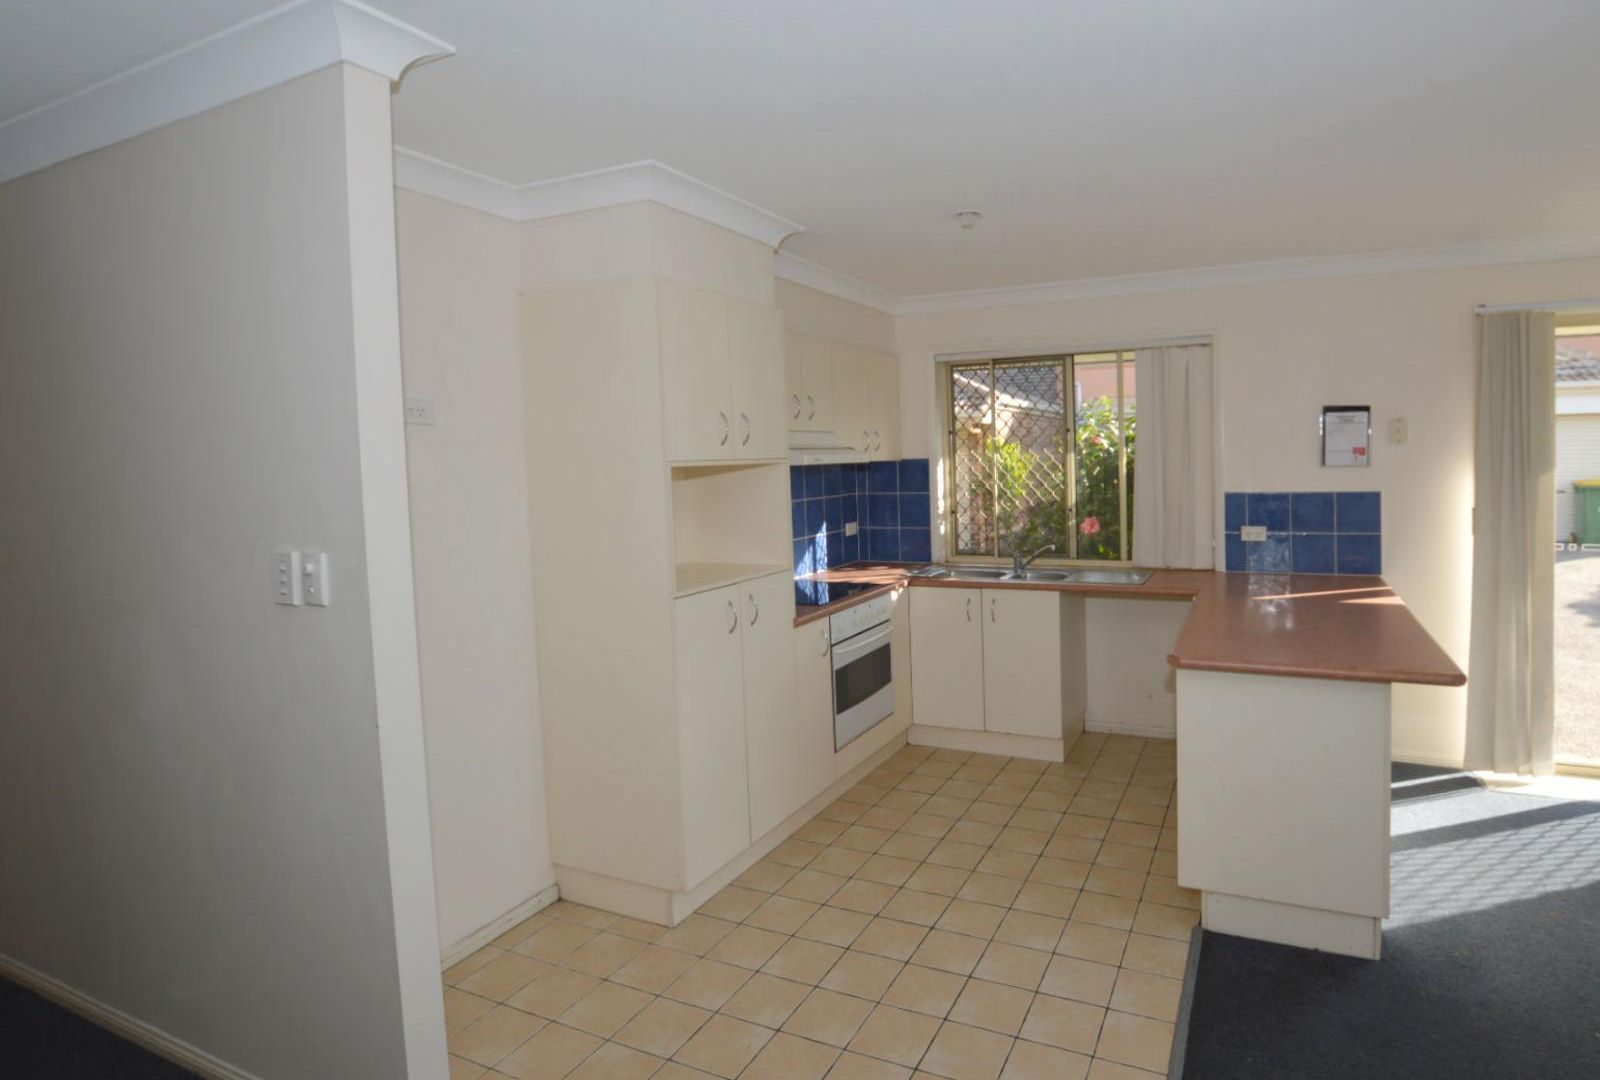 8/1 Highridge Road, Springfield QLD 4300, Image 2